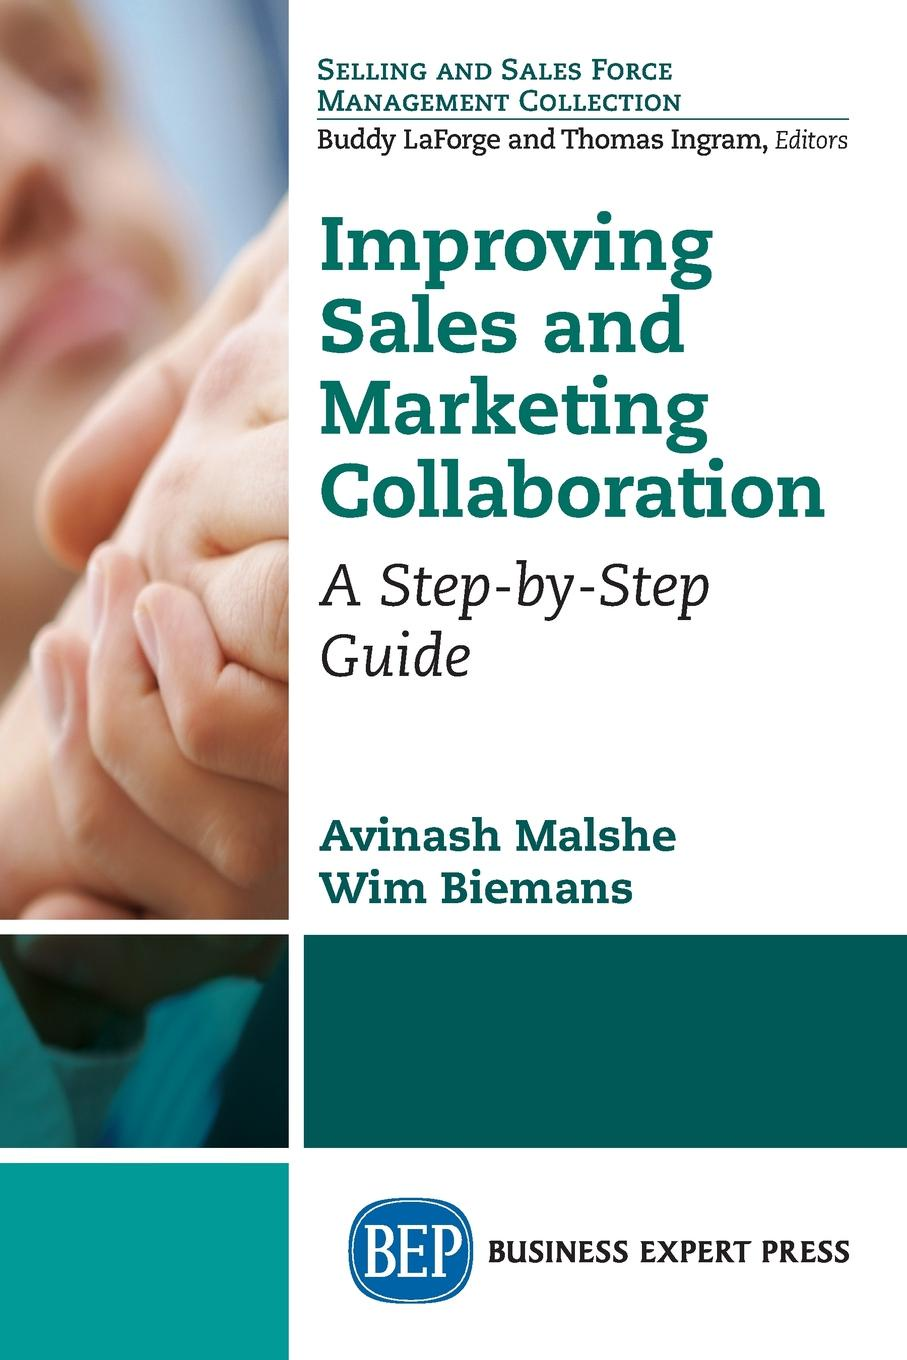 цена на Avinash Malshe, Wim Biemans Improving Sales and Marketing Collaboration. A Step-by-Step Guide